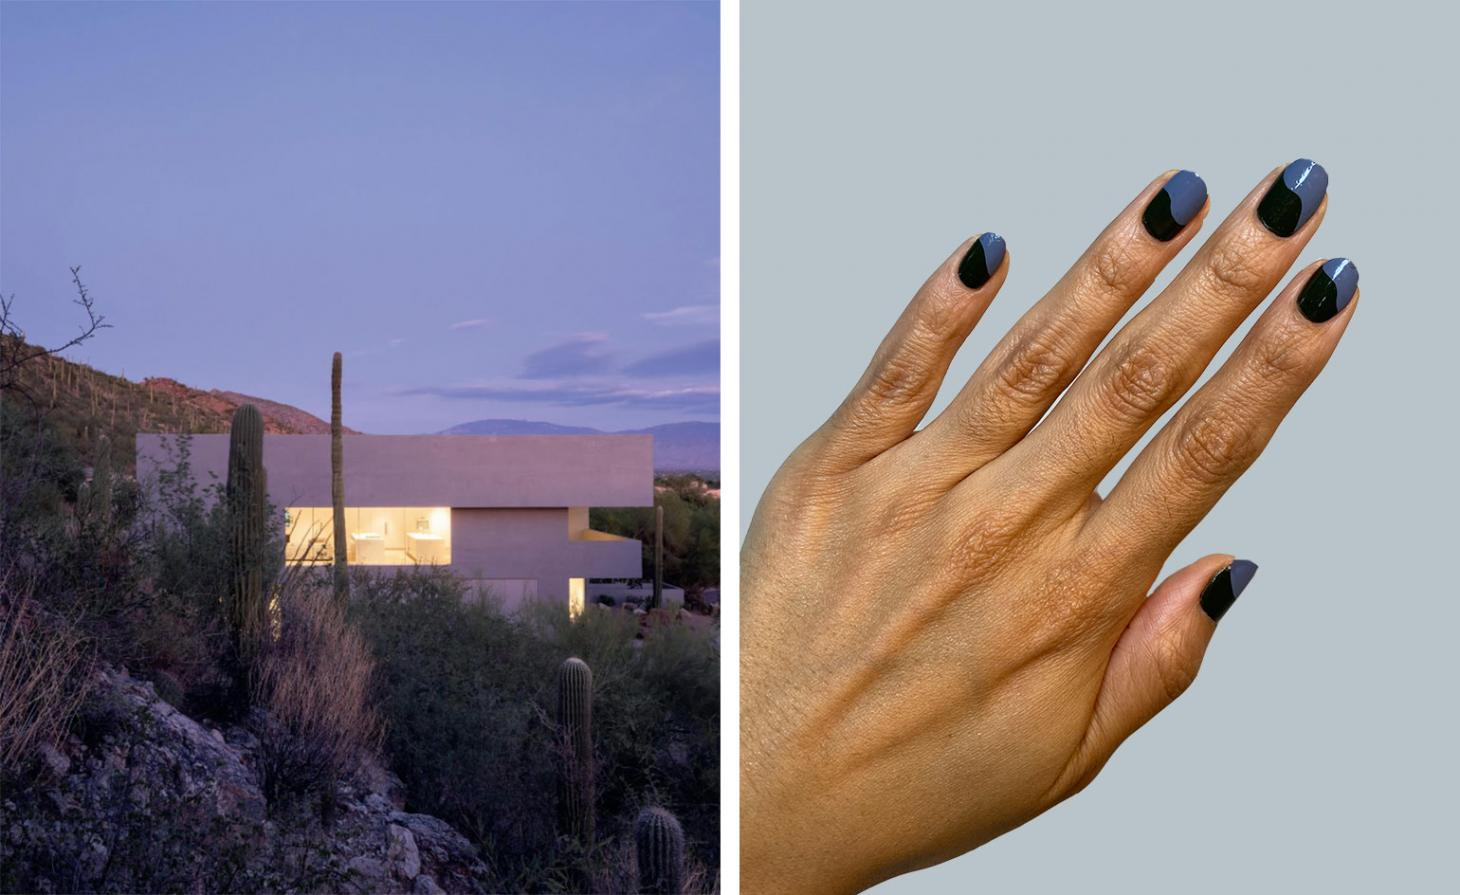 building in the desert next to black and blue nails